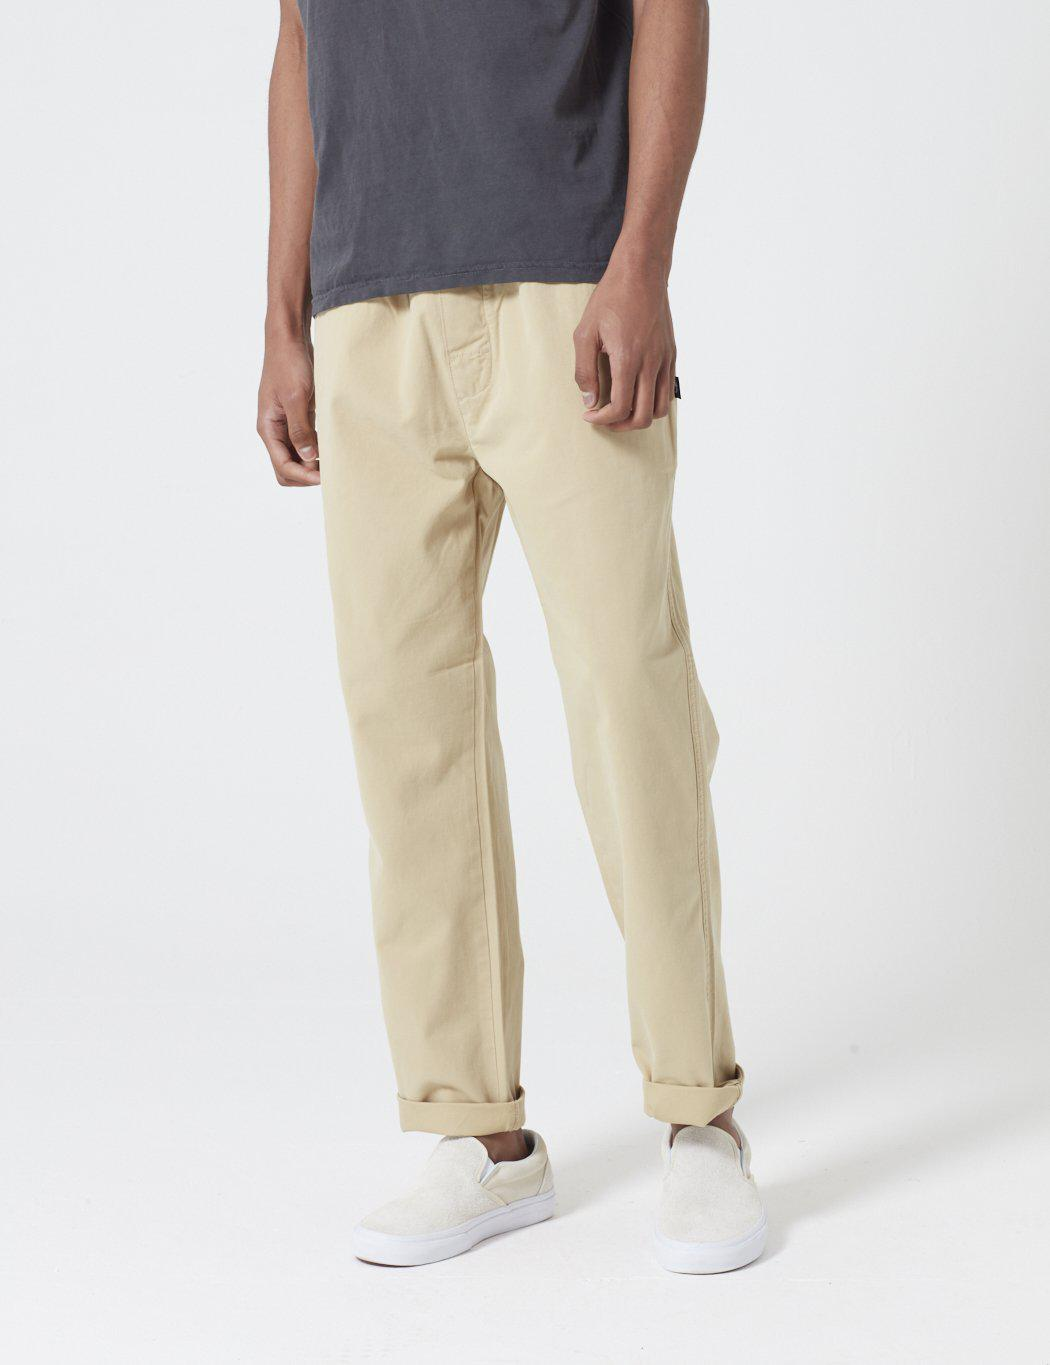 3134c73685 Stussy Brushed Beach Pant in Natural for Men - Lyst